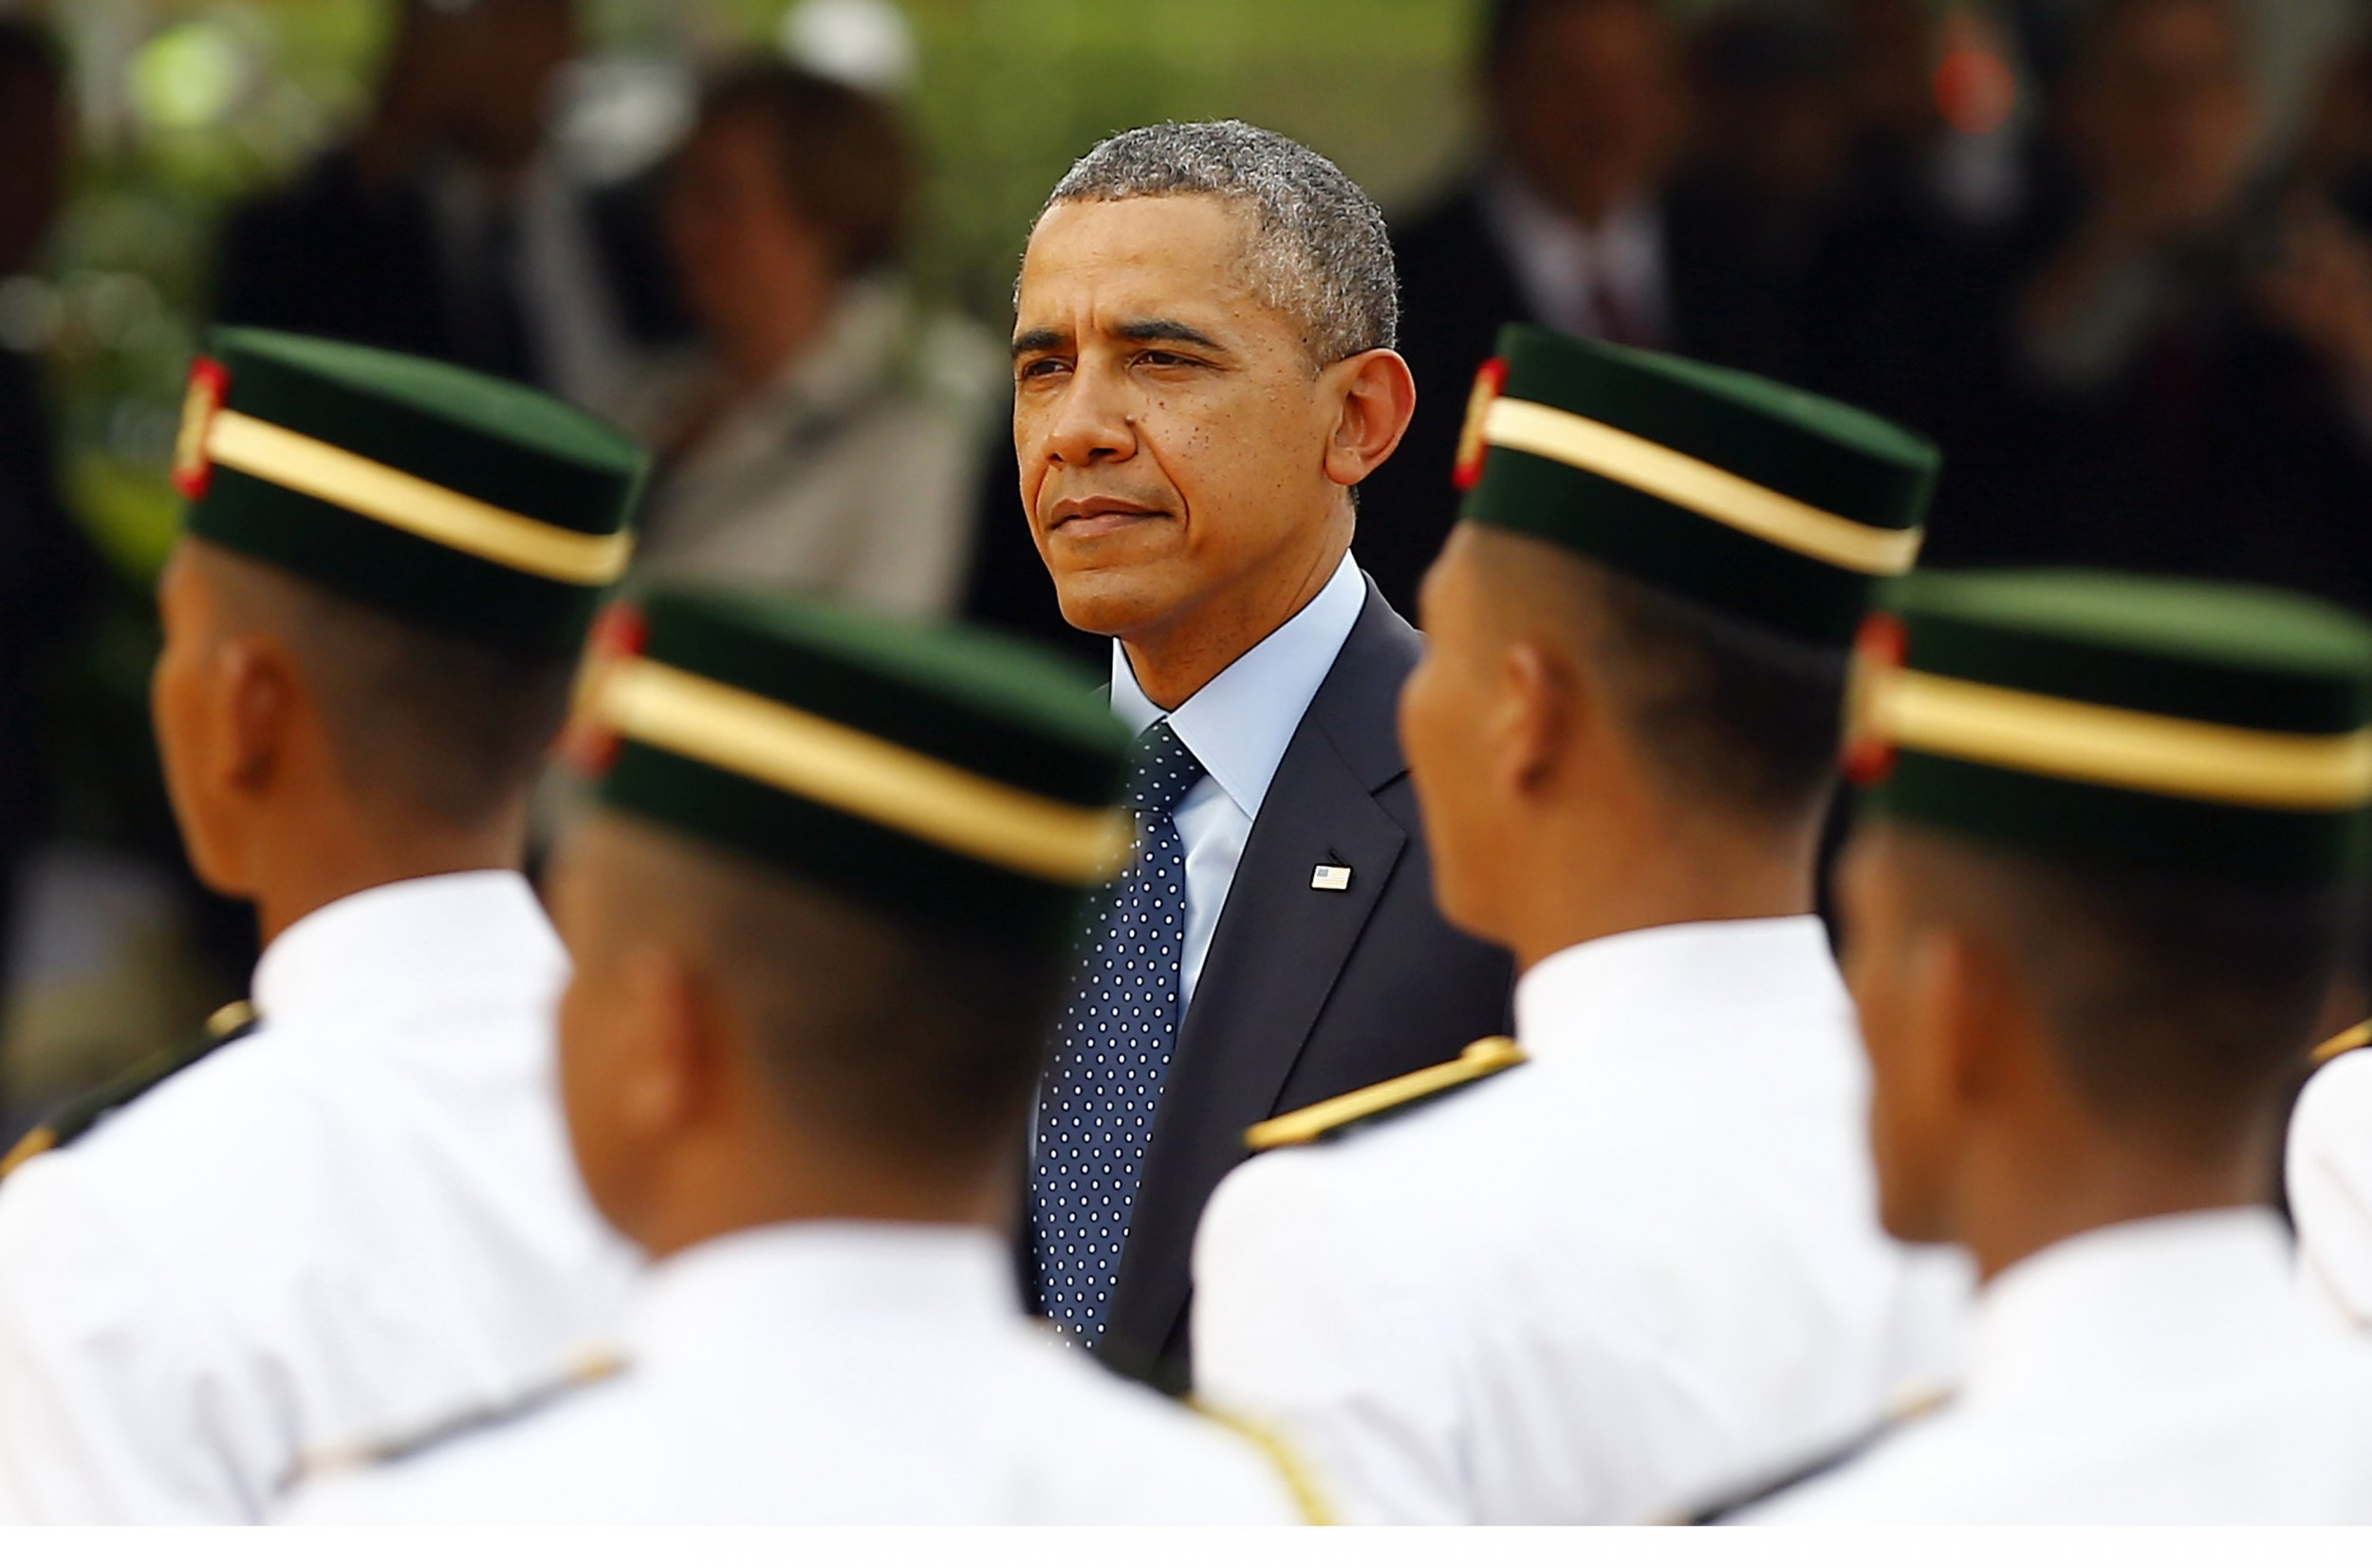 President Obama in Malaysia